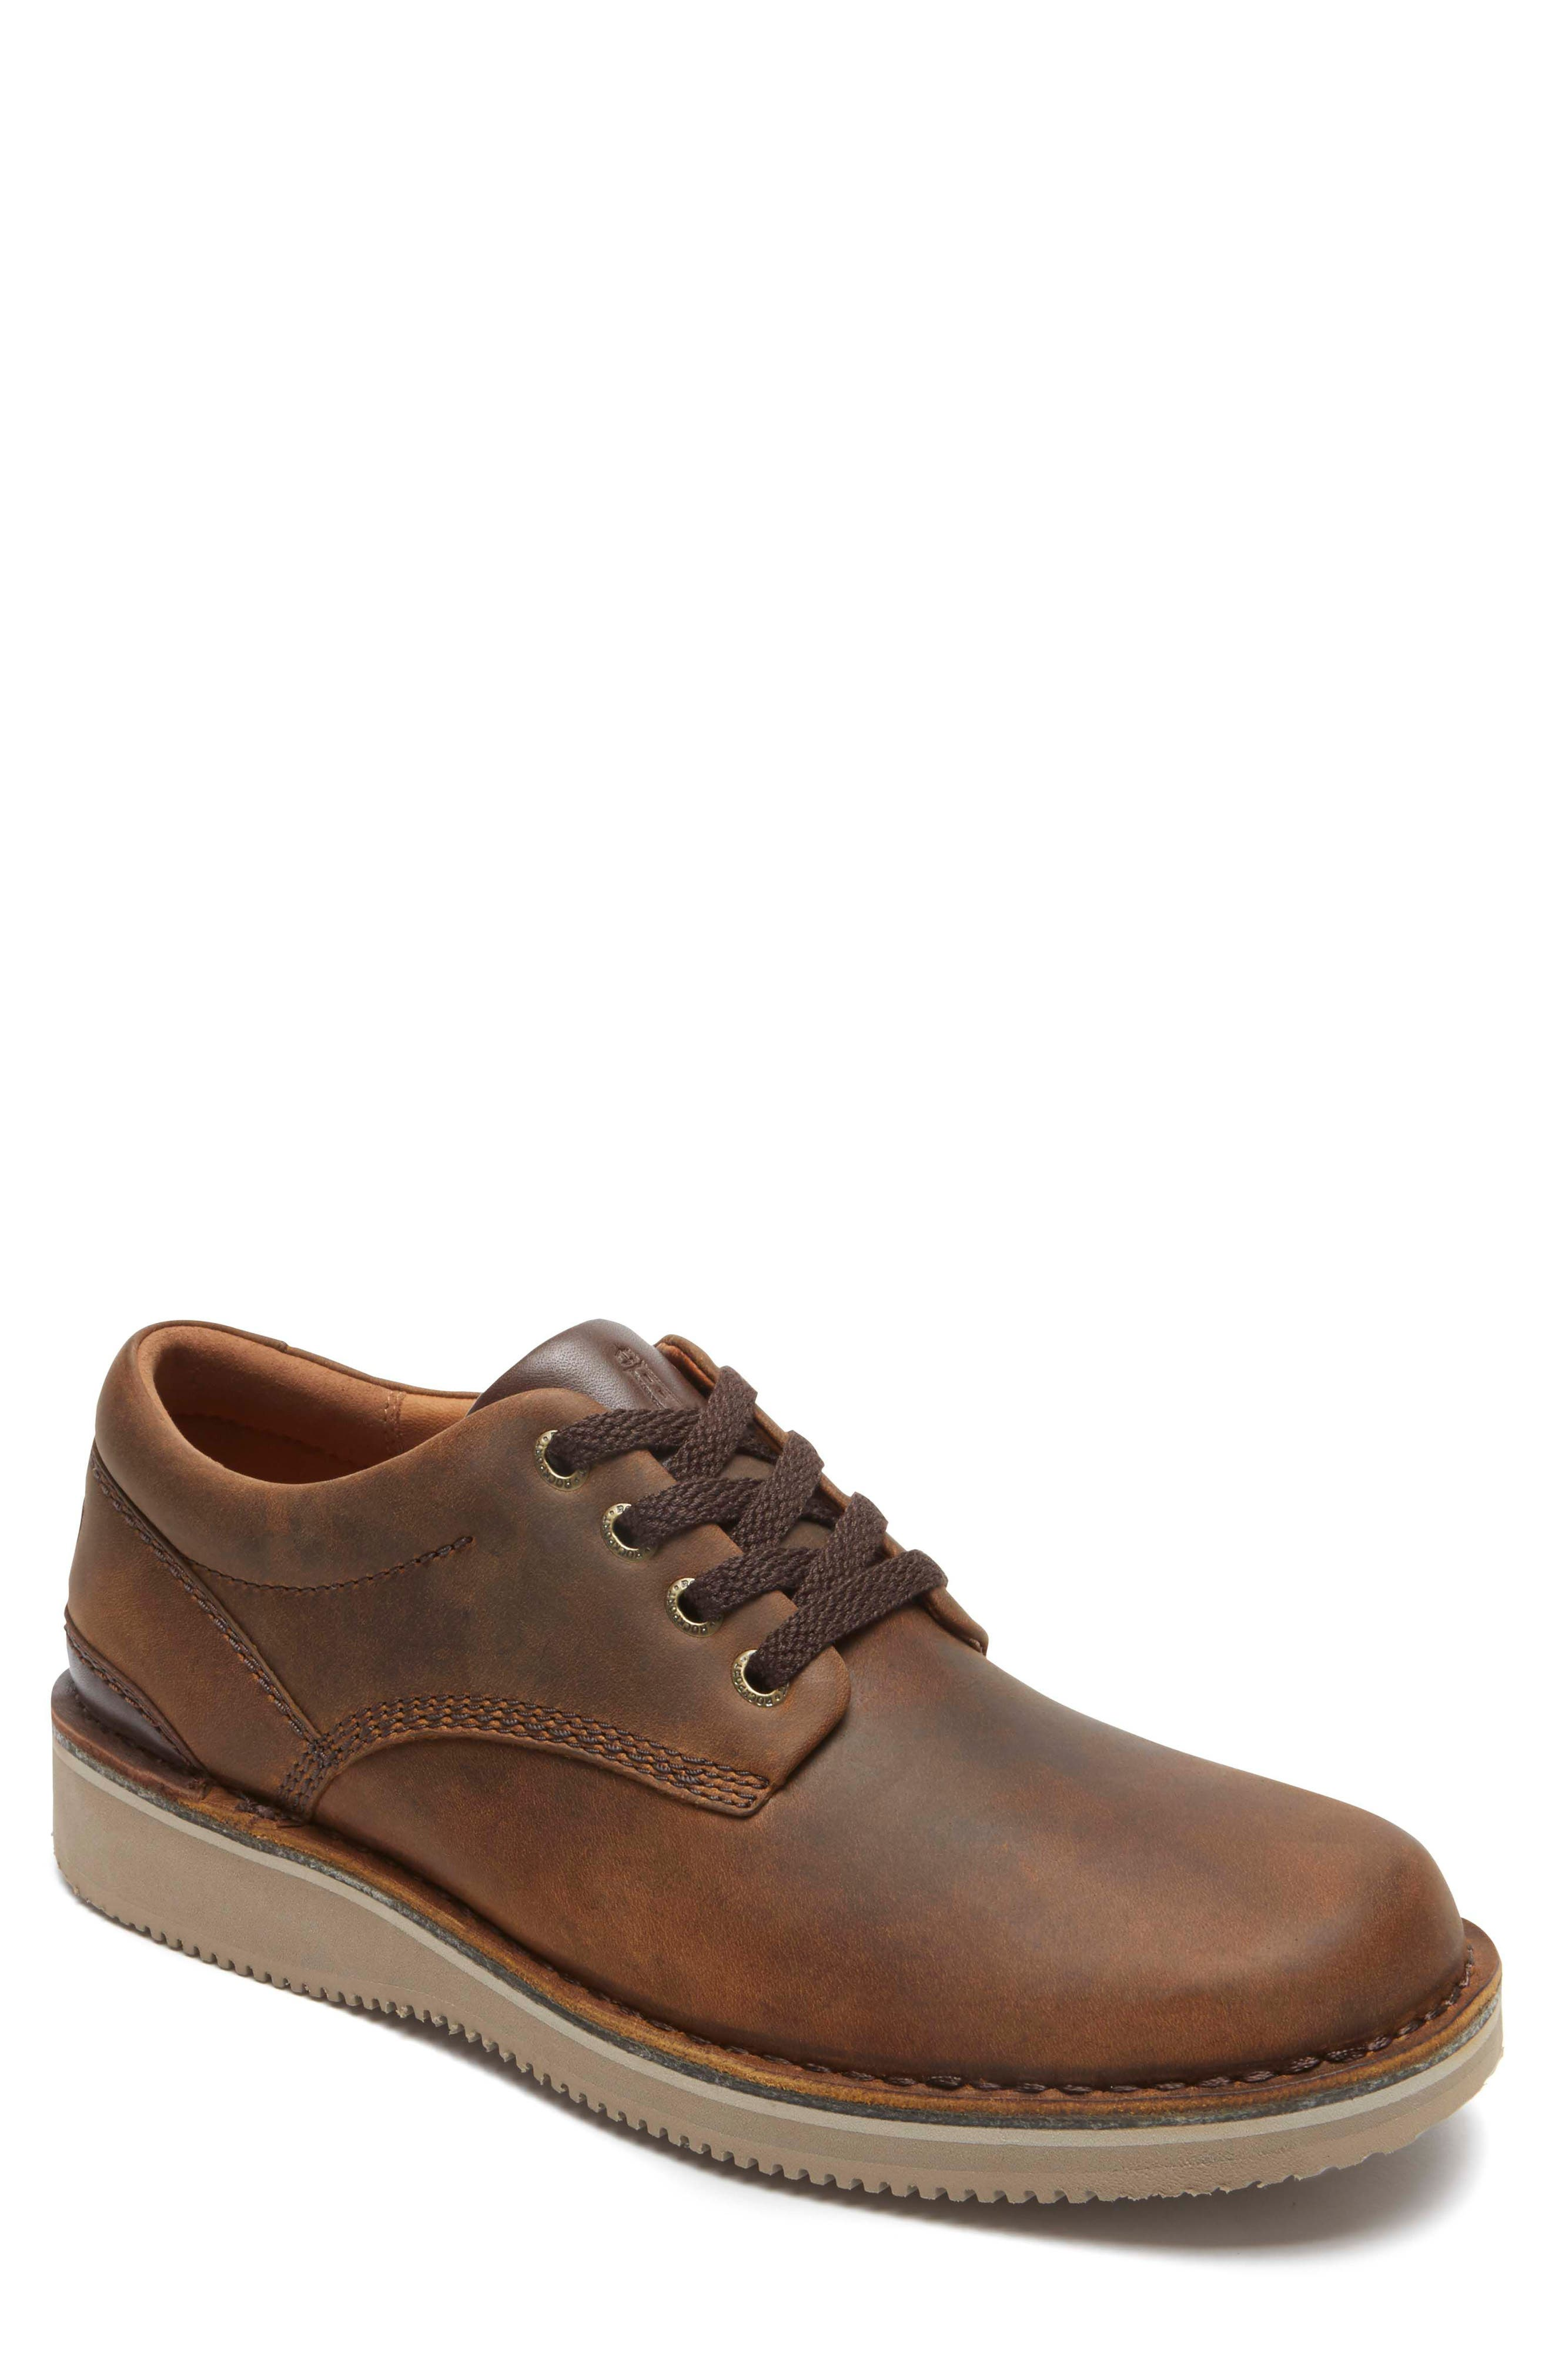 'Prestige Point' Plain Toe Derby,                             Main thumbnail 1, color,                             Beeswax Leather